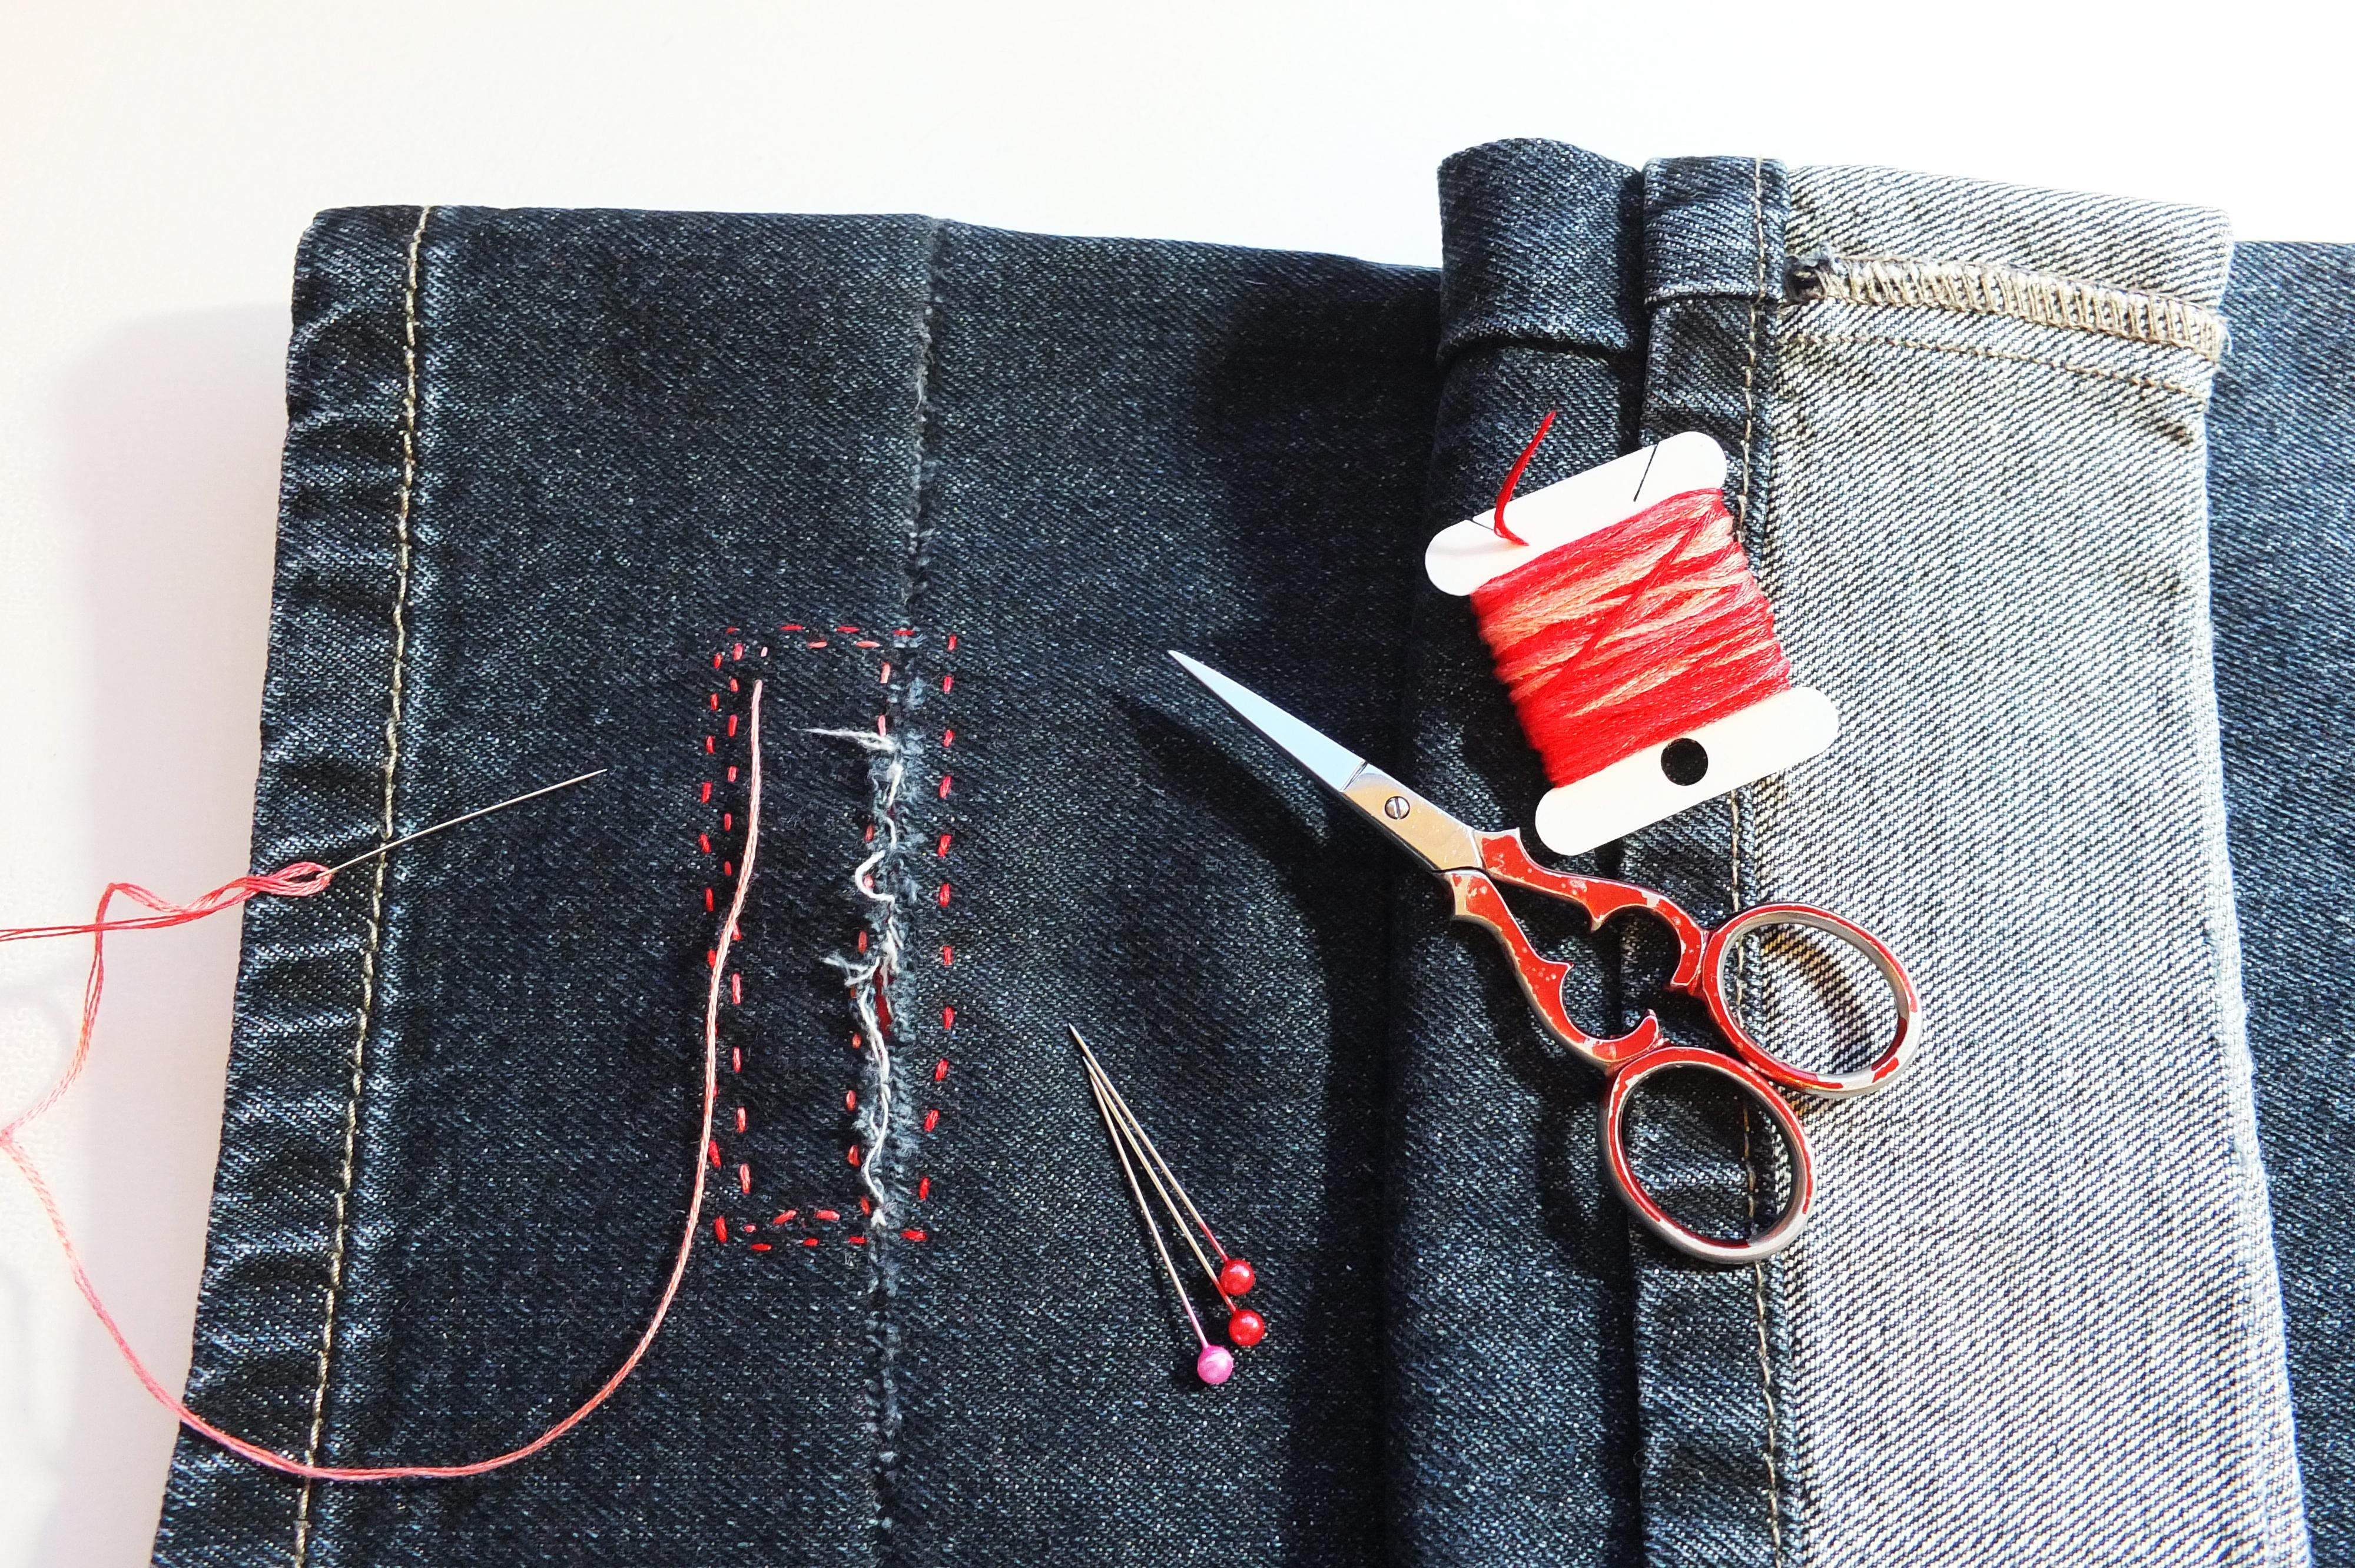 Creative Upcycling - Visible Mending